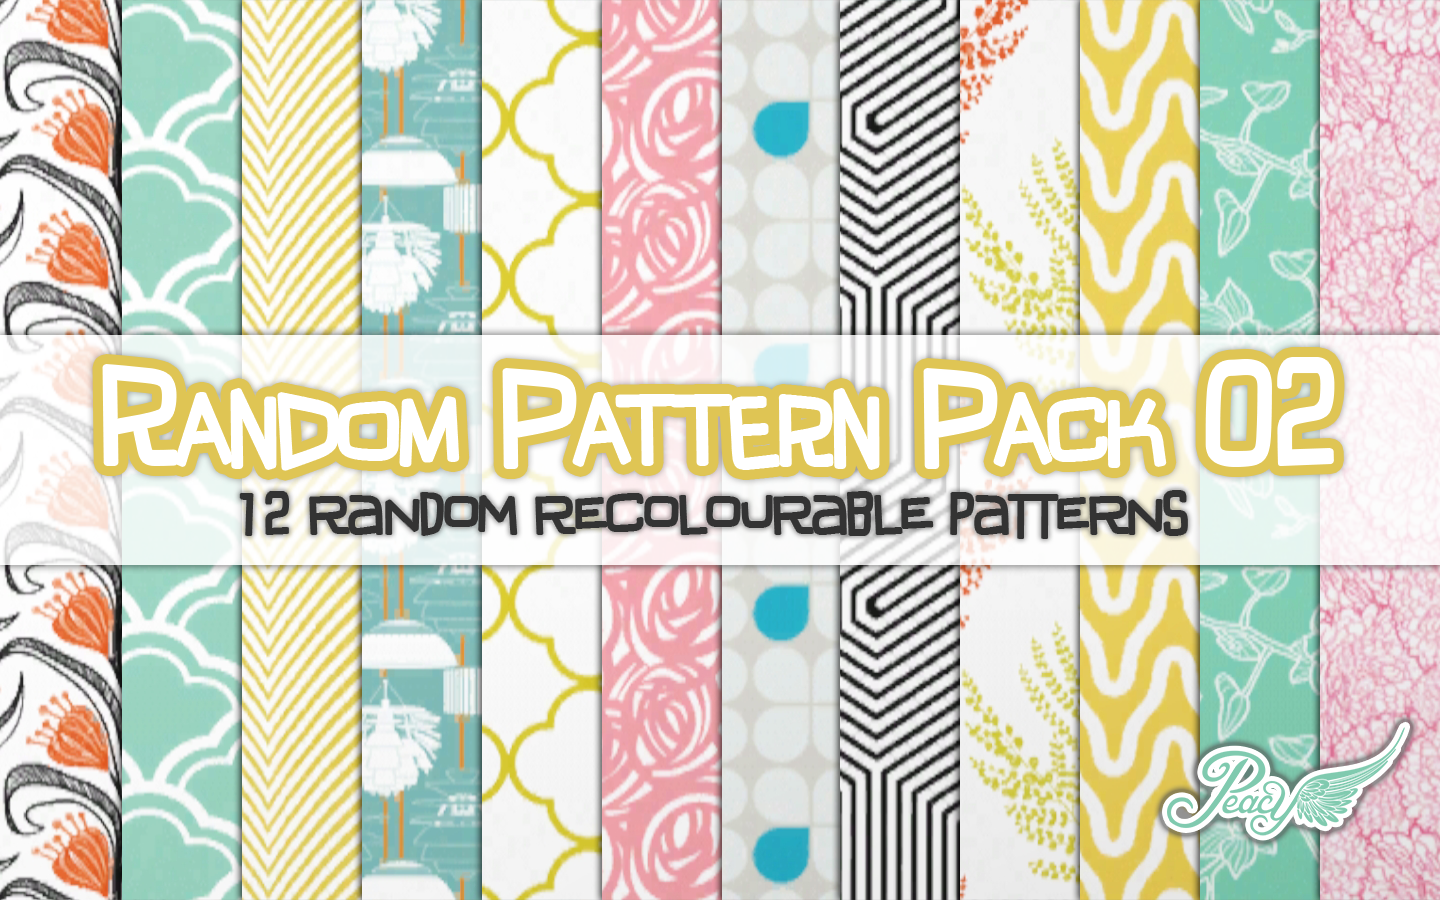 Morrocan Bedroom My Sims 3 Blog Random Pattern Pack 02 By Peacemaker Ic